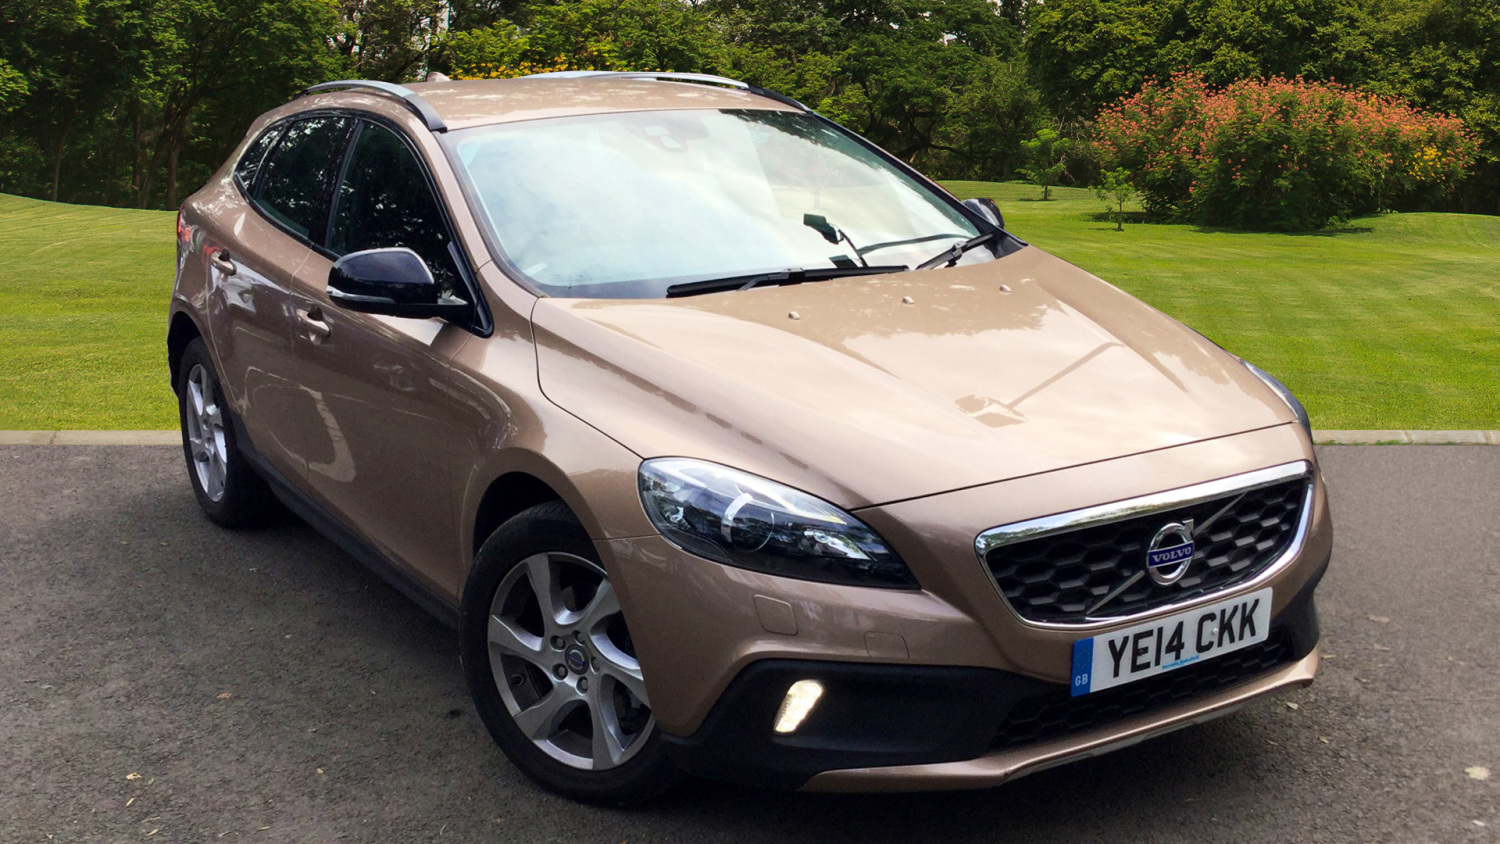 used volvo v40 d2 cross country lux 5dr powershift diesel hatchback for sale in scotland. Black Bedroom Furniture Sets. Home Design Ideas